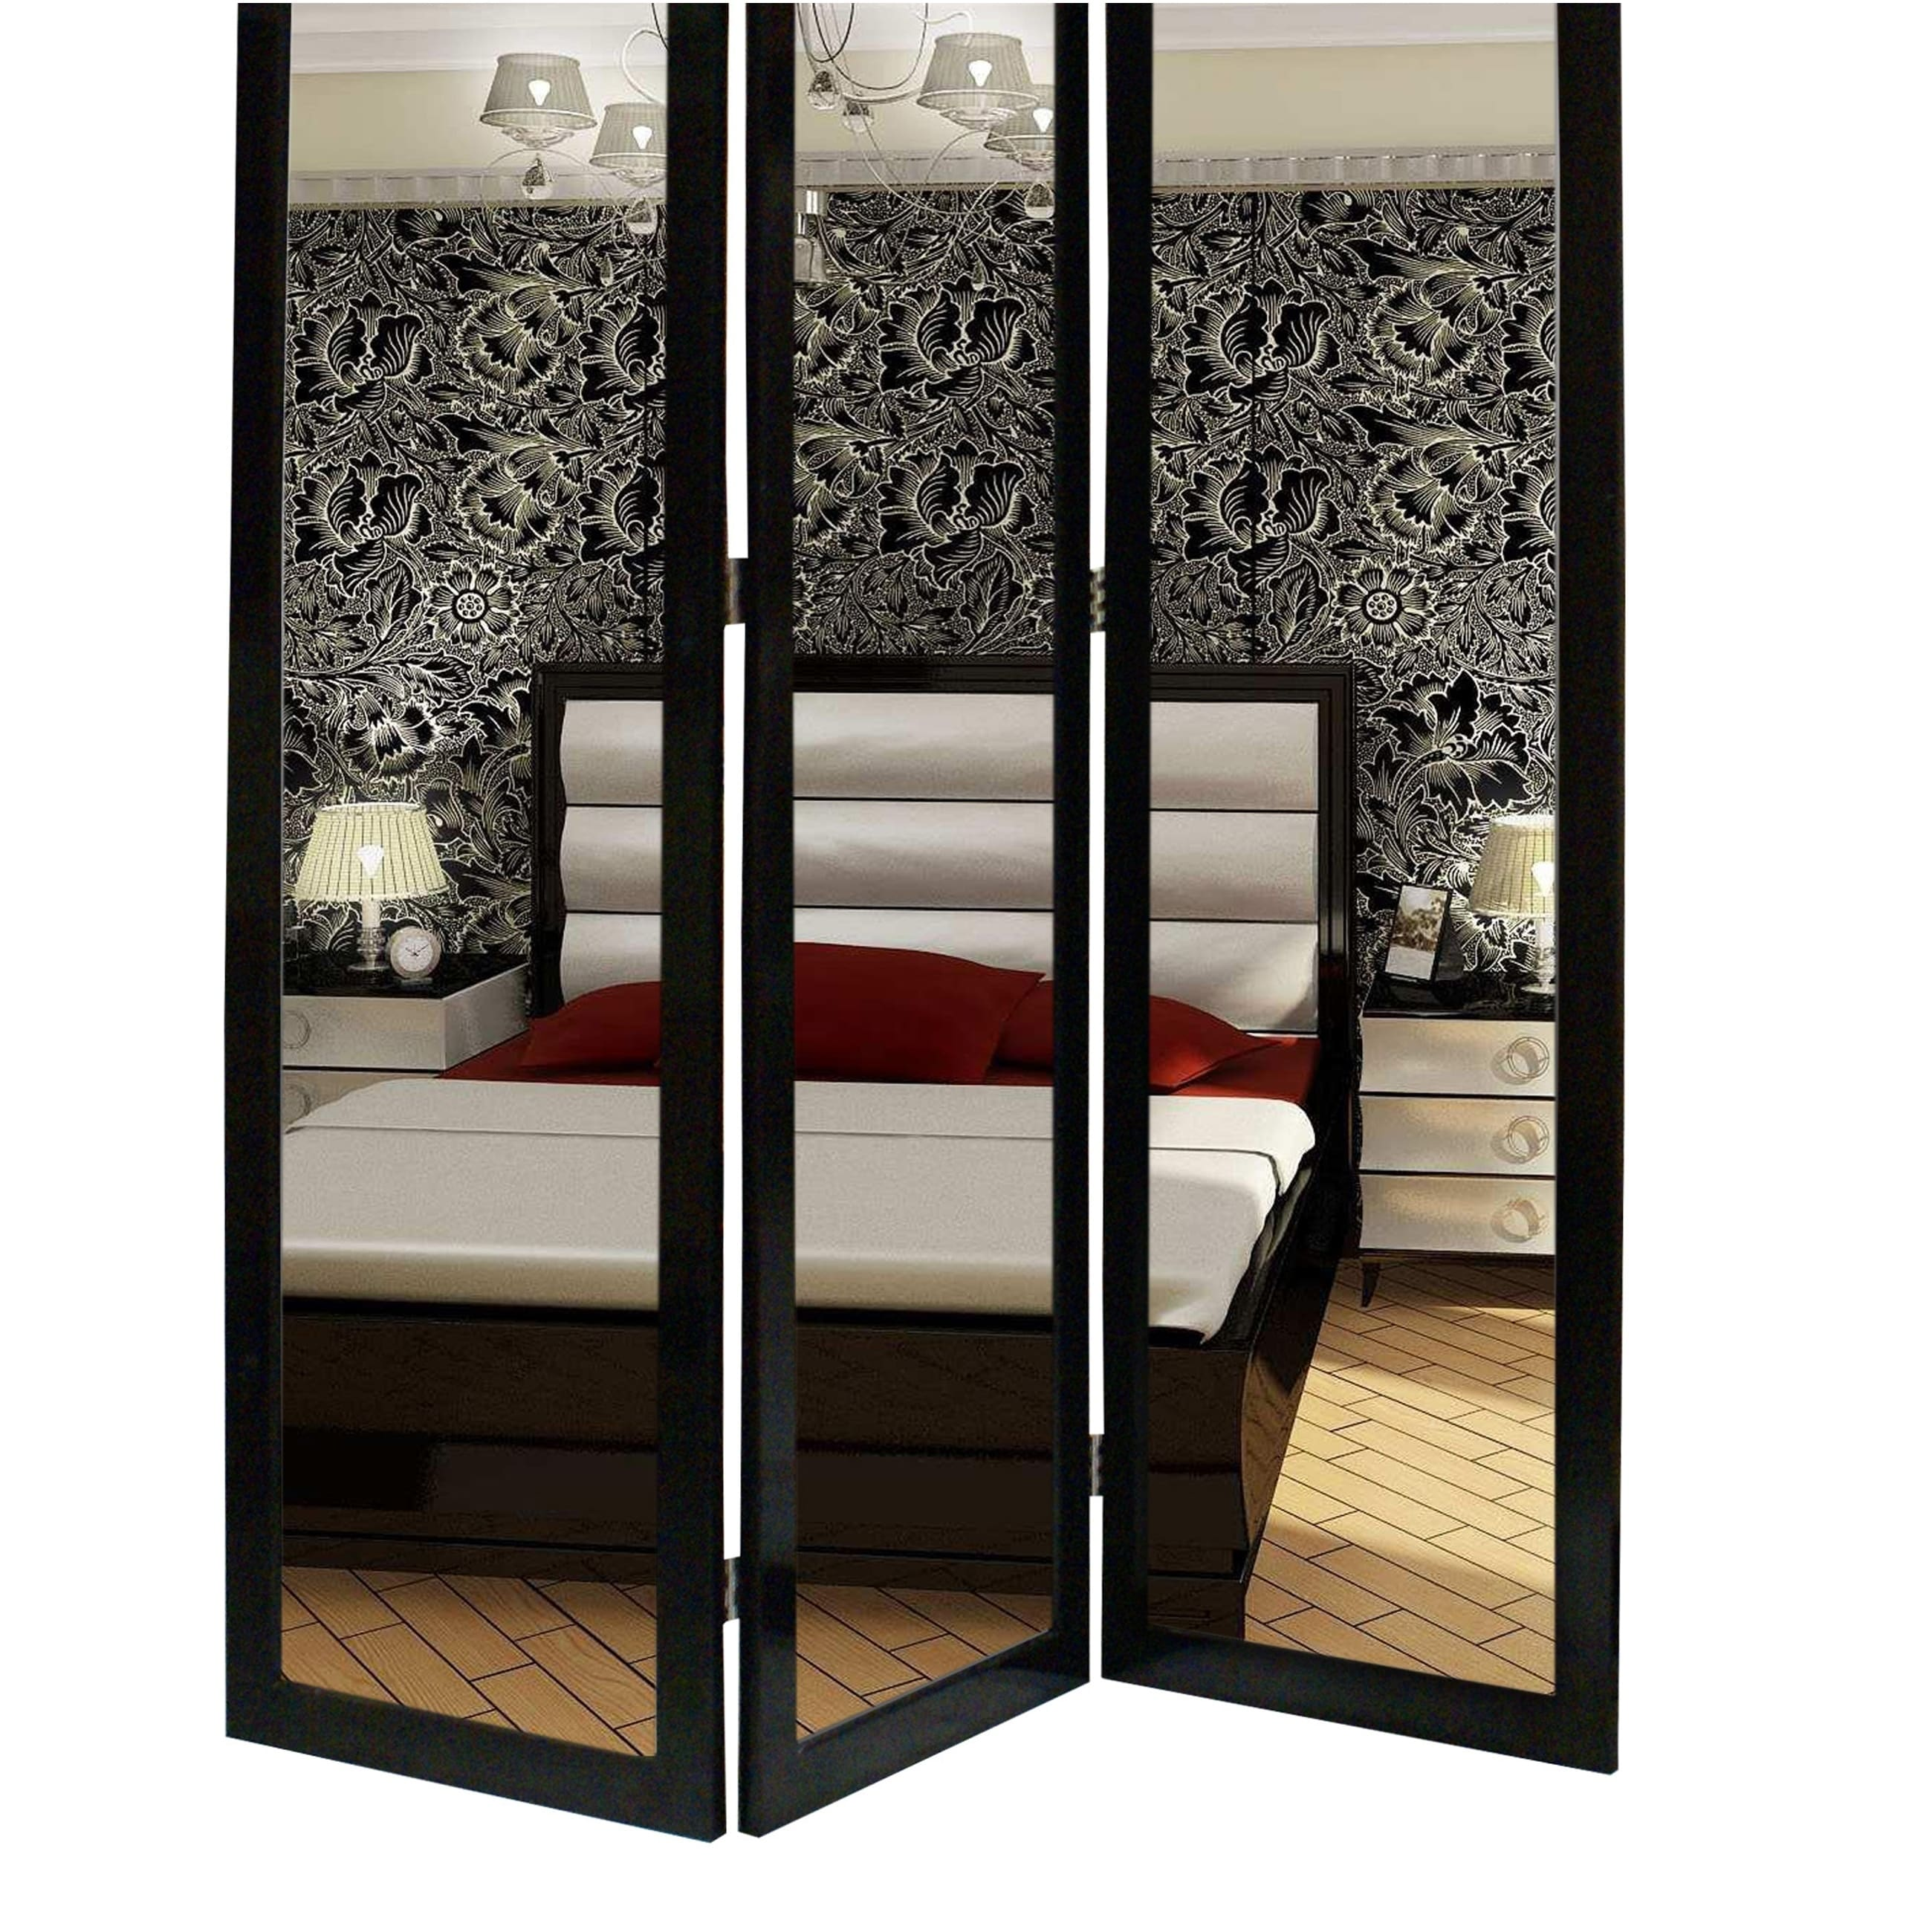 3 Panel Wooden Foldable Mirror Encasing Room Divider Black And Silver On Sale Overstock 31224434